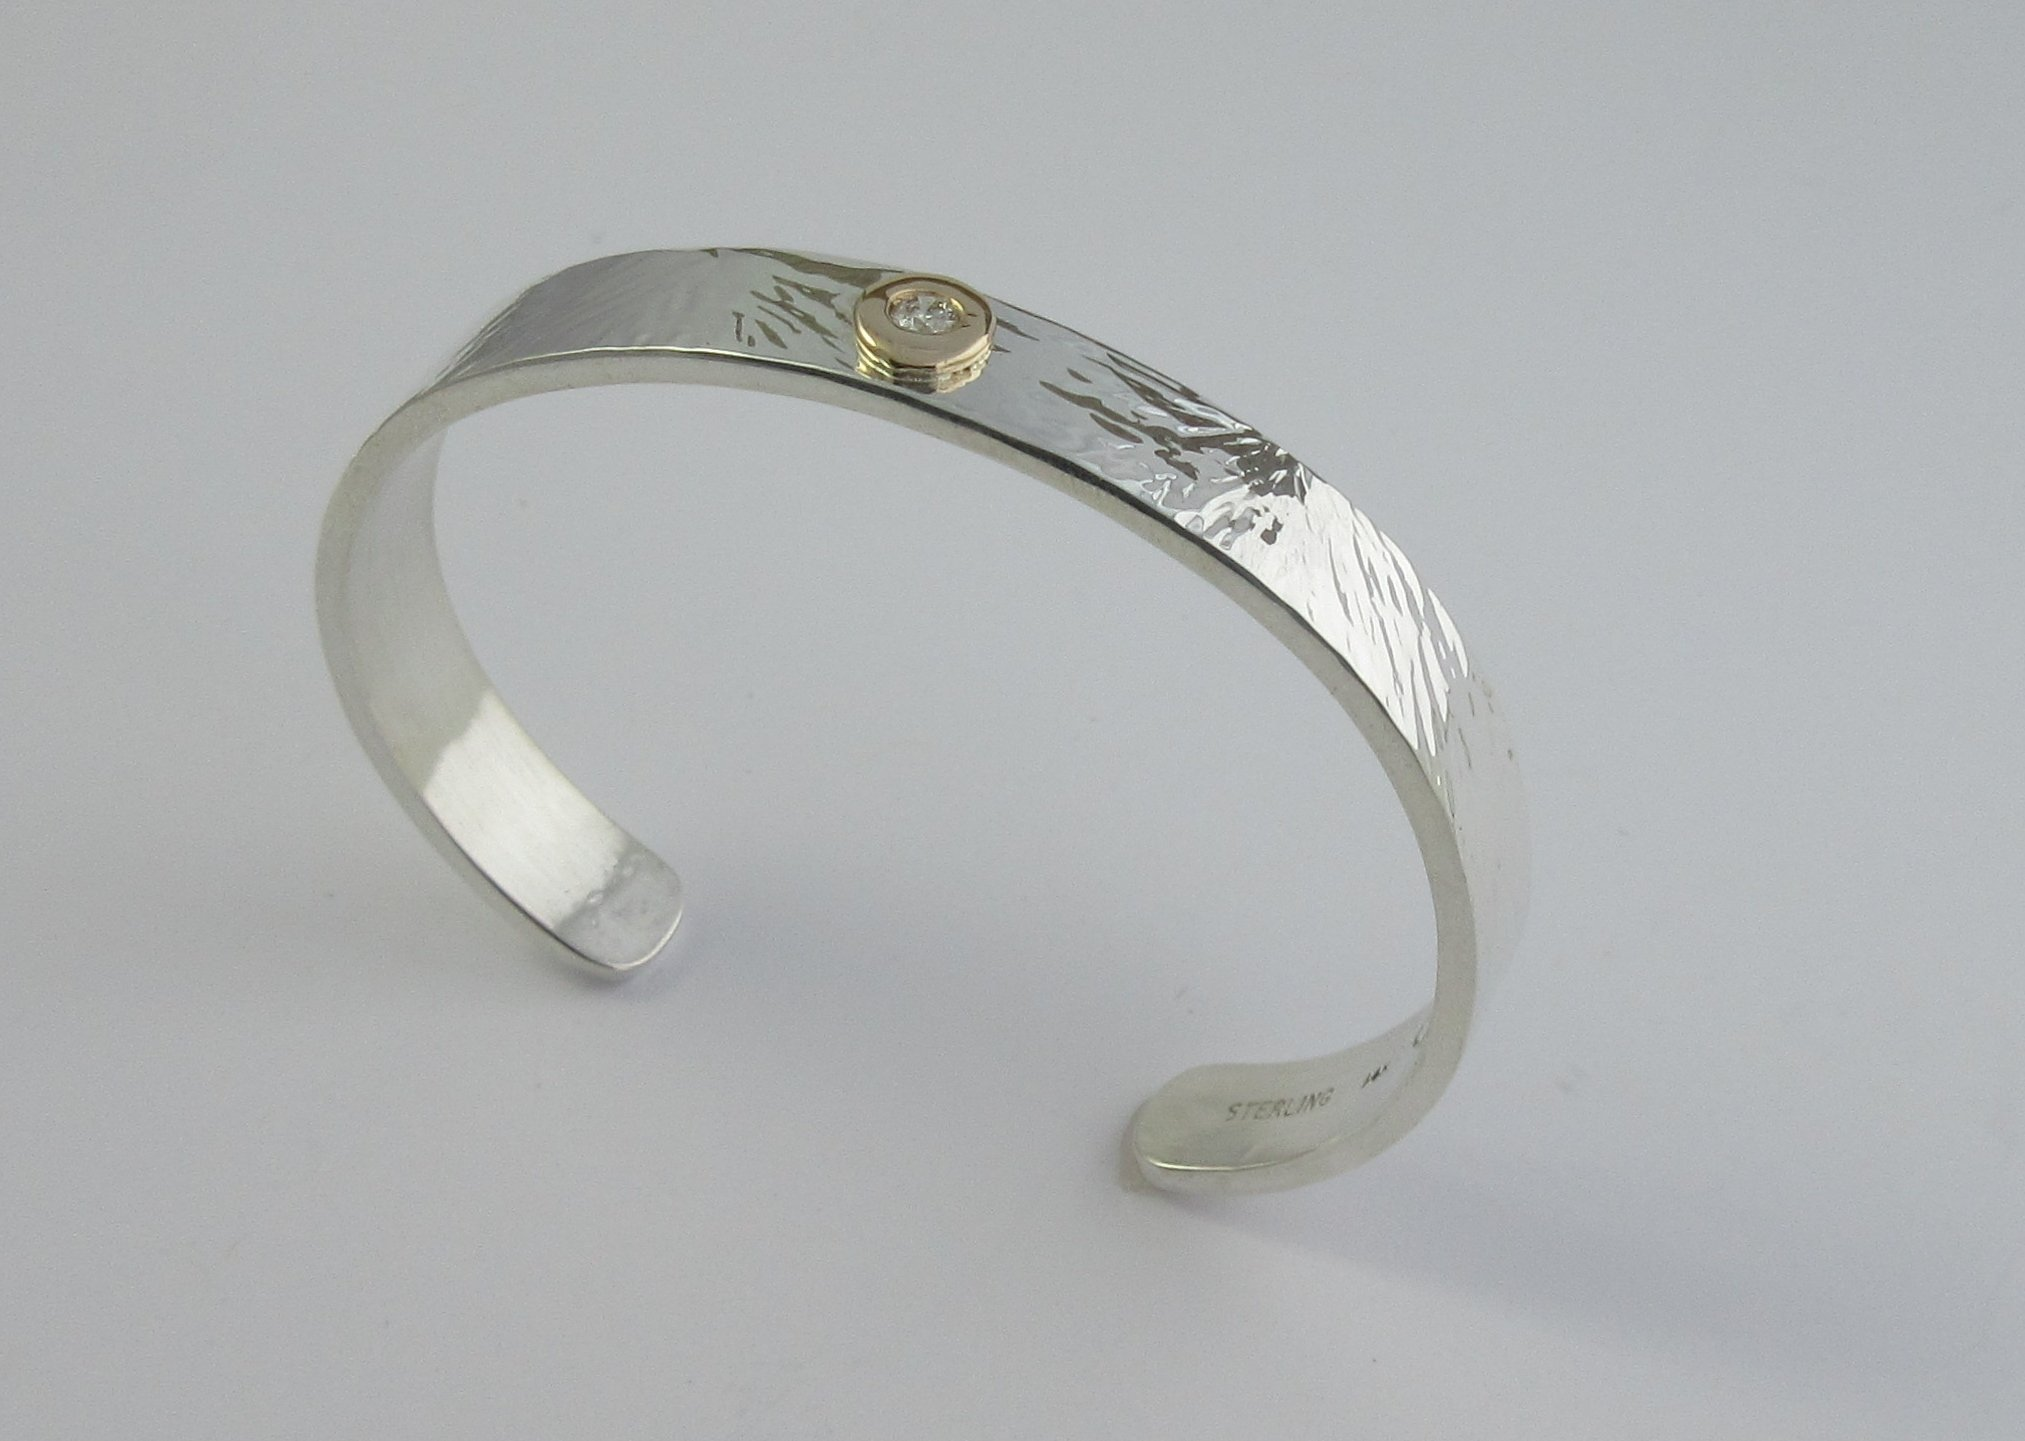 Sterling silver cuff bracelet with 14kt yellow gold diamond